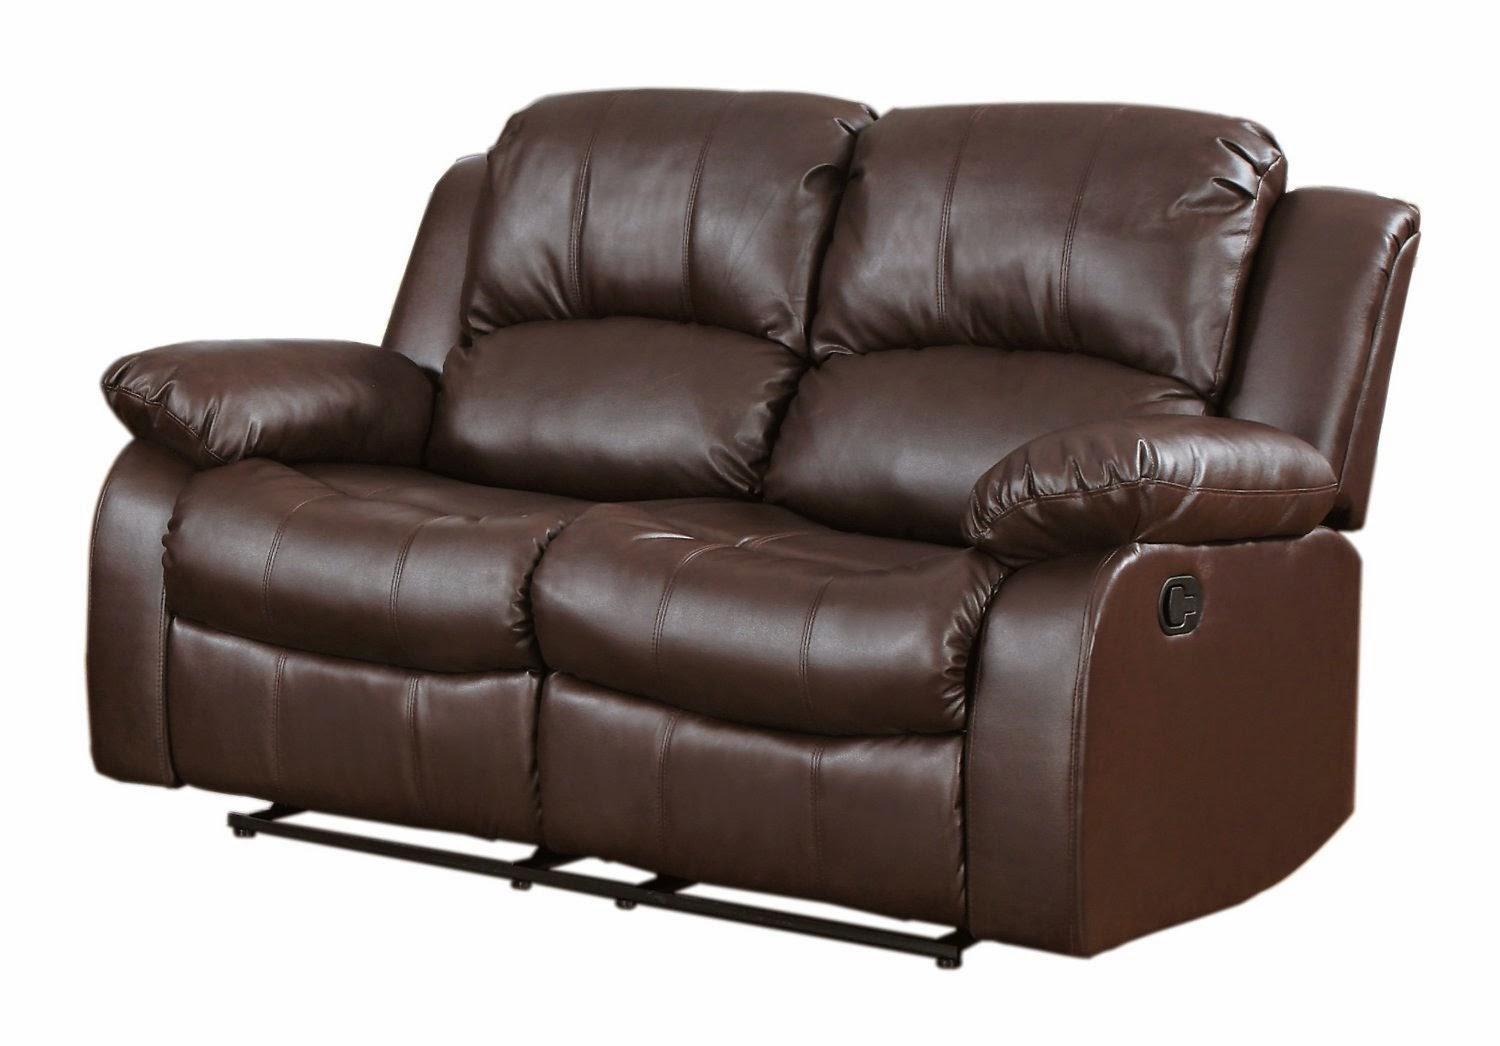 2 Seat Reclining Leather Sofa  sc 1 st  Best Leather Reclining Sofa Brands Reviews - blogger & Best Leather Reclining Sofa Brands Reviews: 2 Seat Reclining ... islam-shia.org